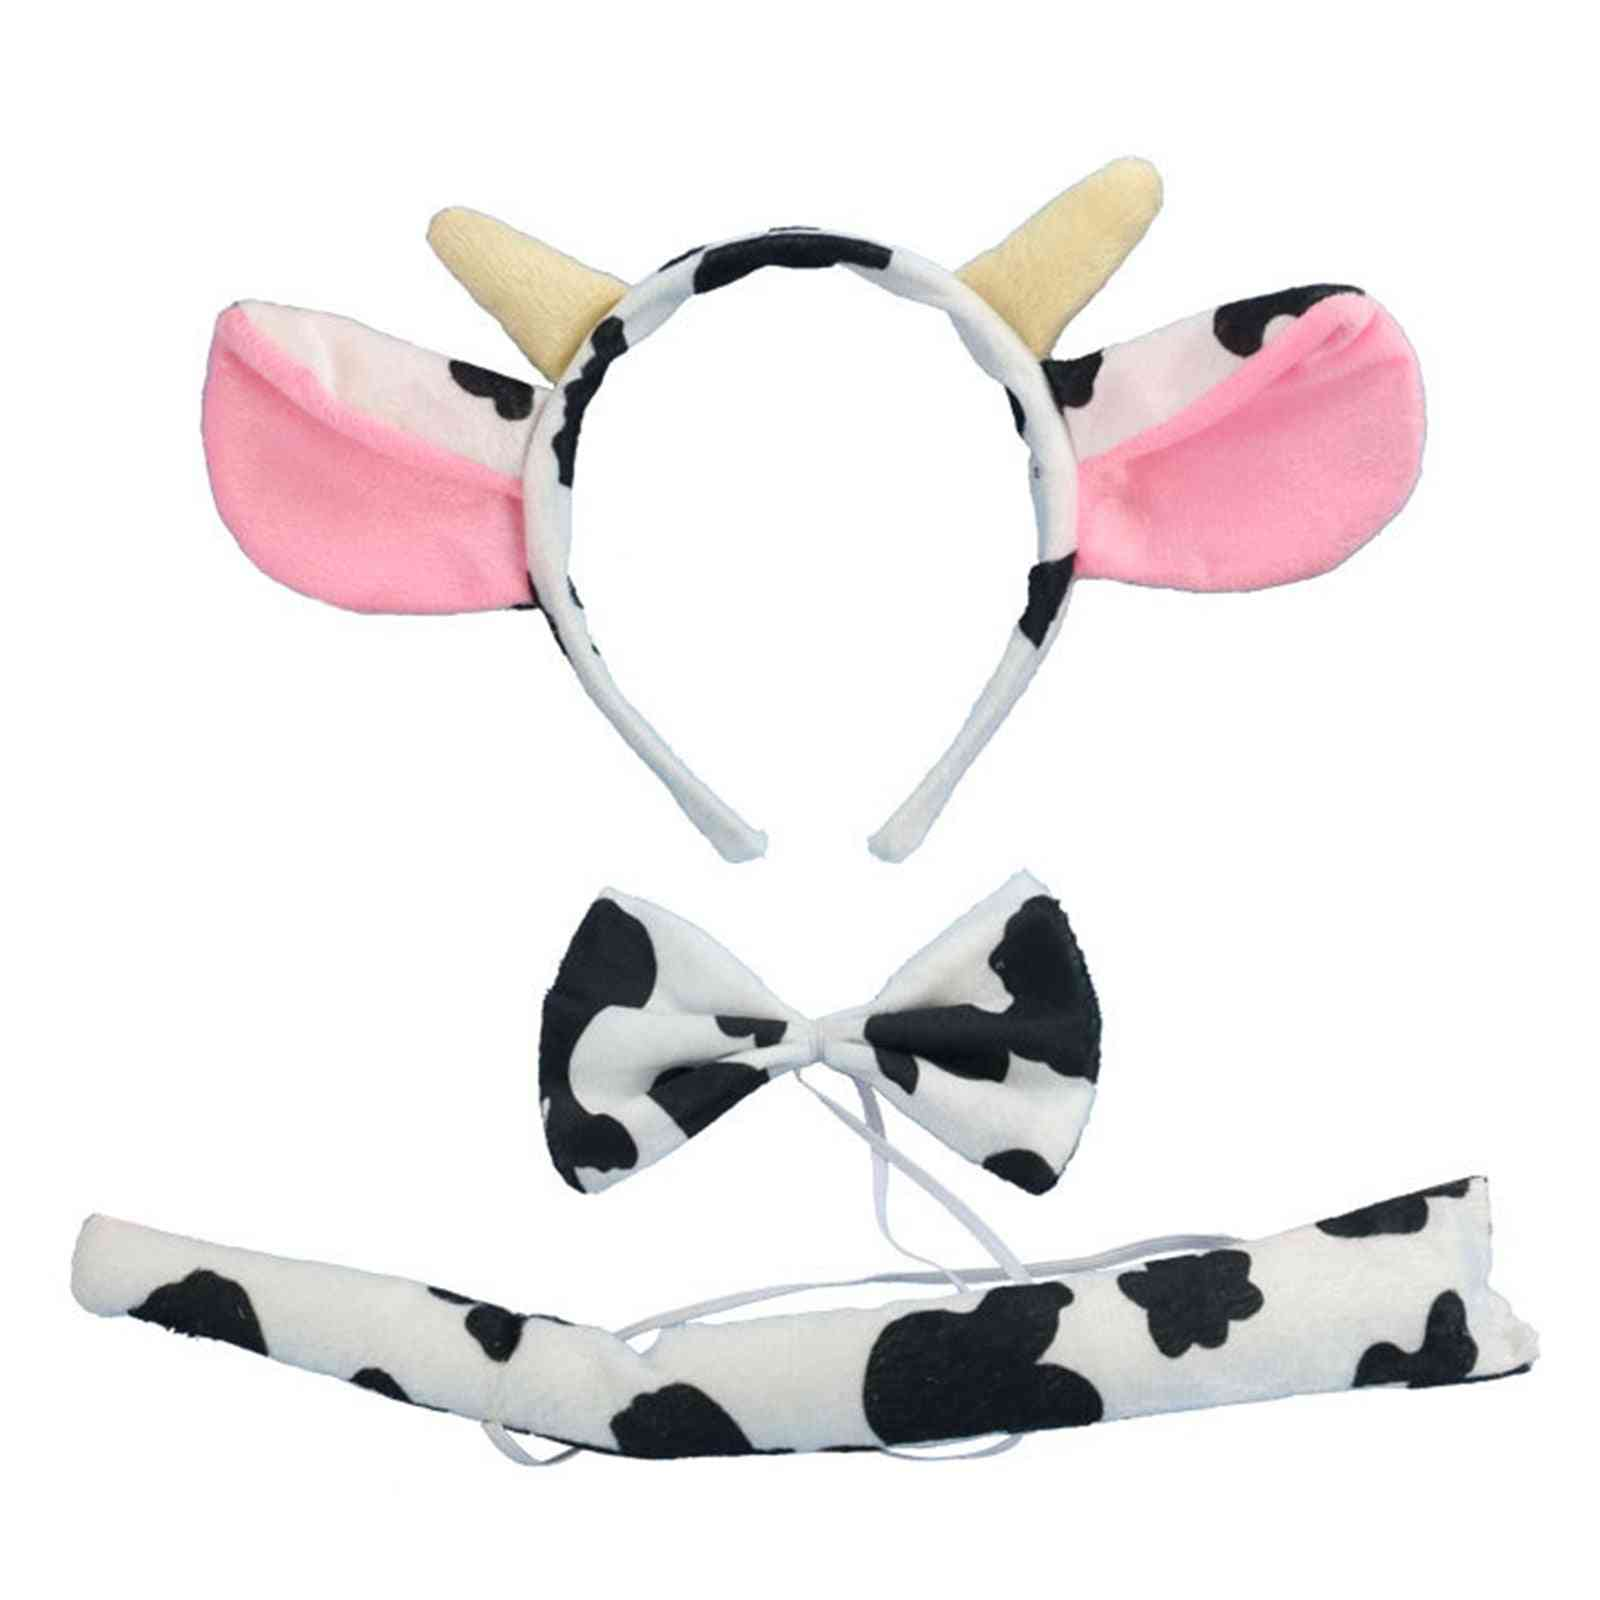 Kids Party Dress Up Costume, Cattle Cow Headband, Ears Bowtie, Tail Cow Headgear Dress Up,  Party Suit